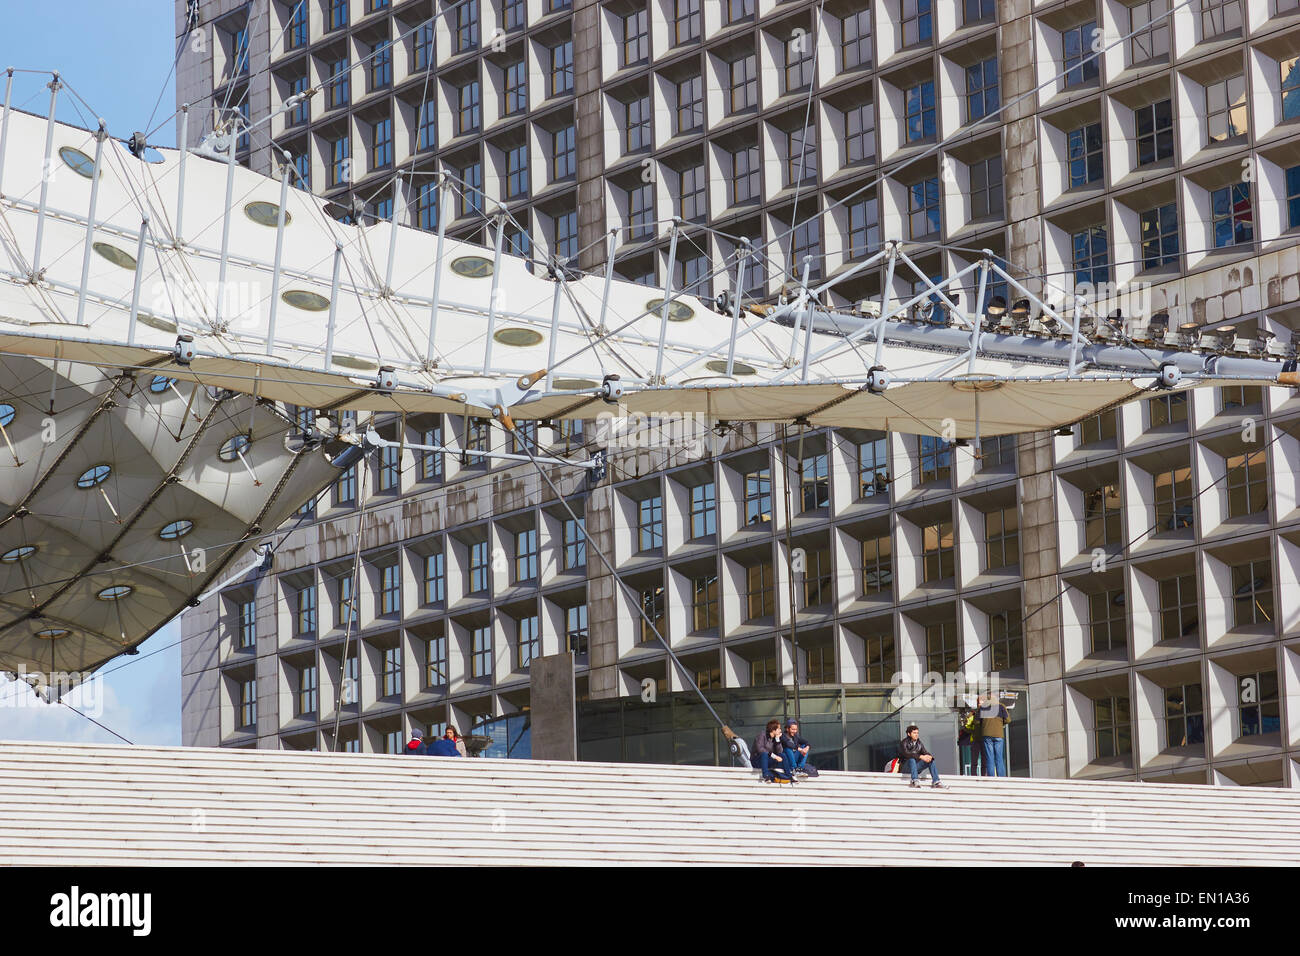 Canopy and steps of the Grande Arche La Defense business district Paris France Europe & Canopy and steps of the Grande Arche La Defense business district ...